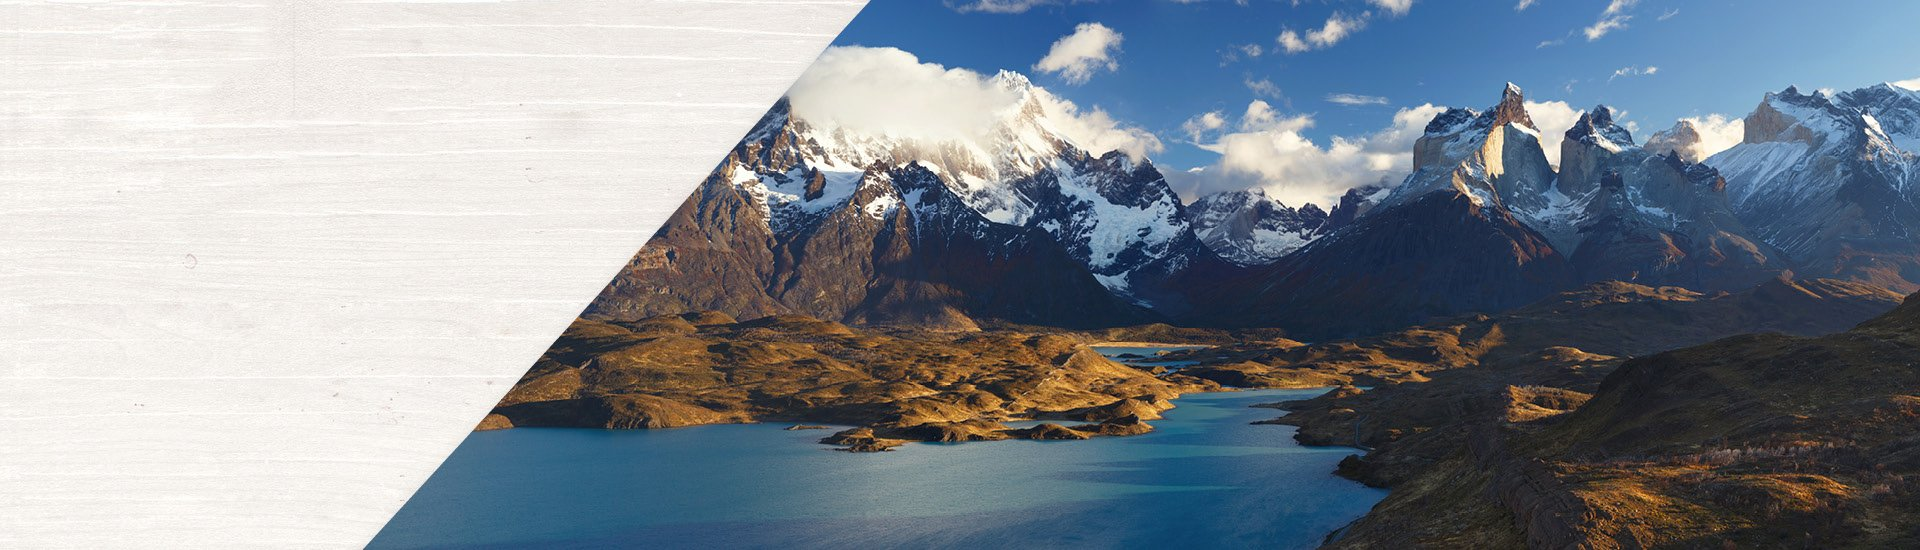 Weine - Vinorama on Tour: Weine der Anden - Chile & Argentinien mit -20% 09/2019 - Slider